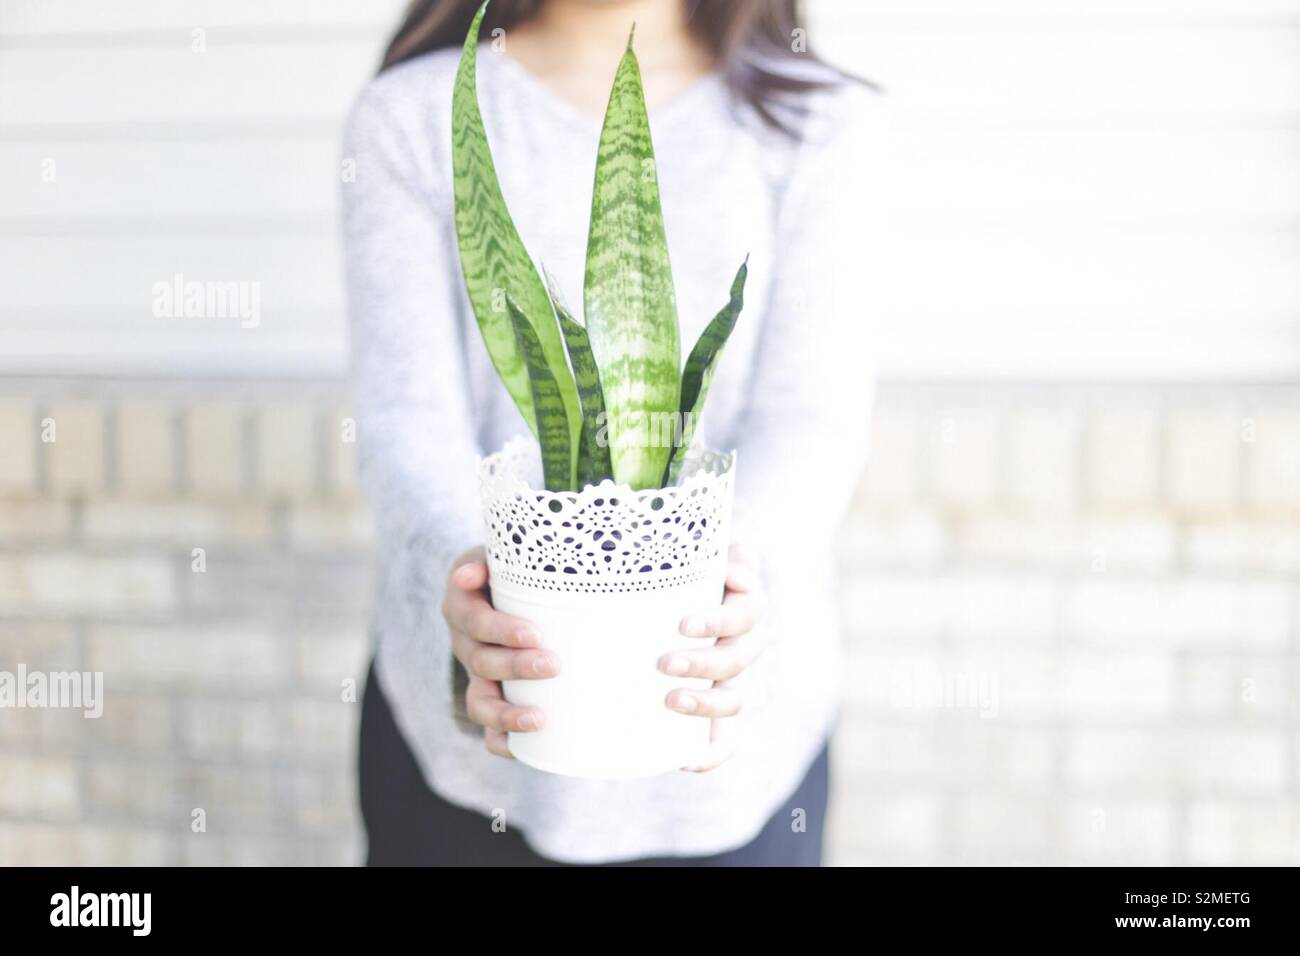 Girl holding a snake plant Stock Photo